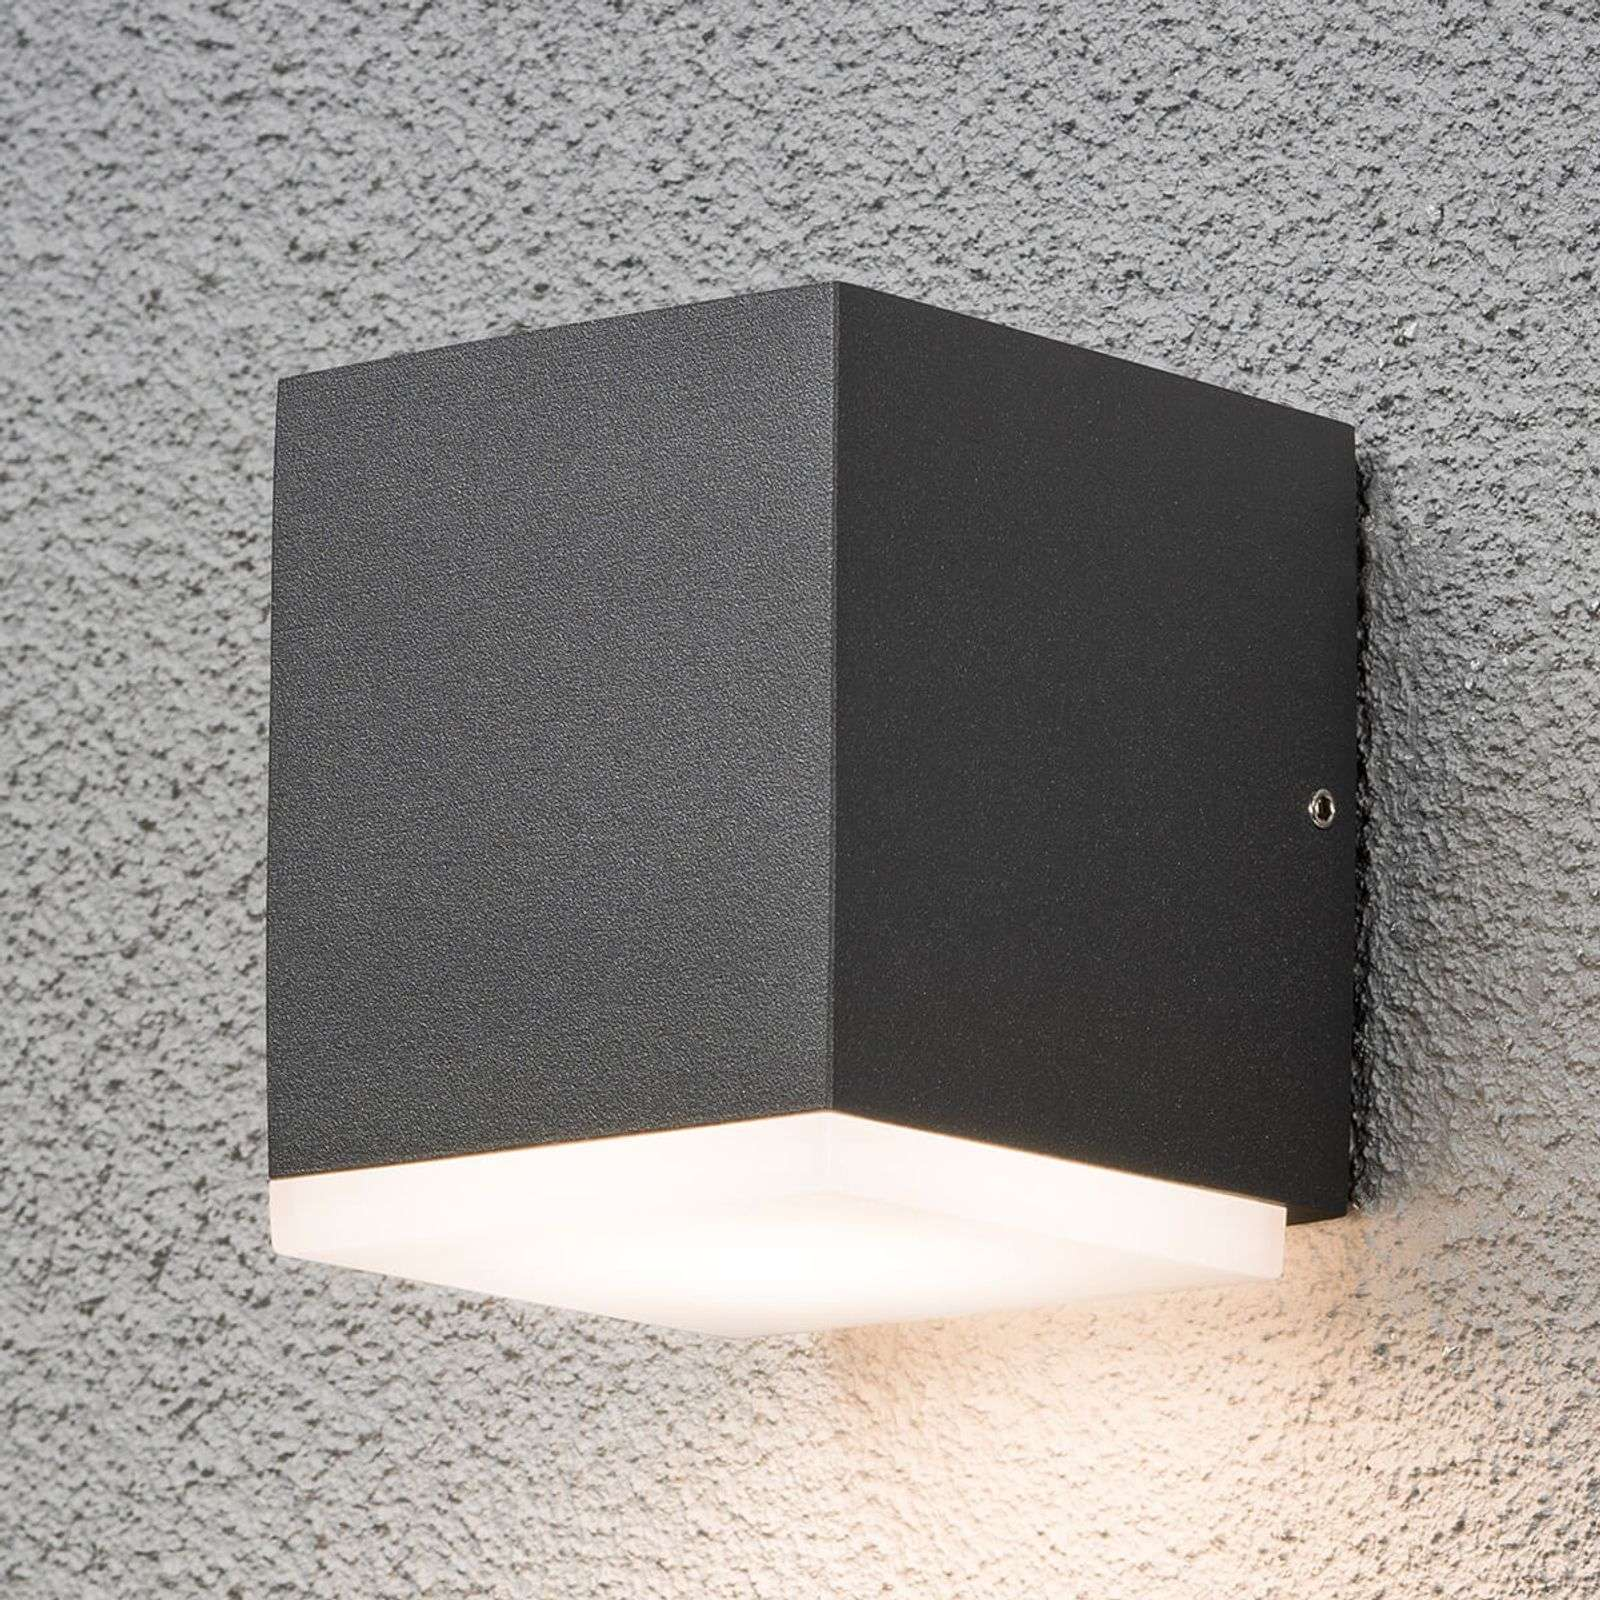 Aplique cuadrado de pared exterior LED Monza